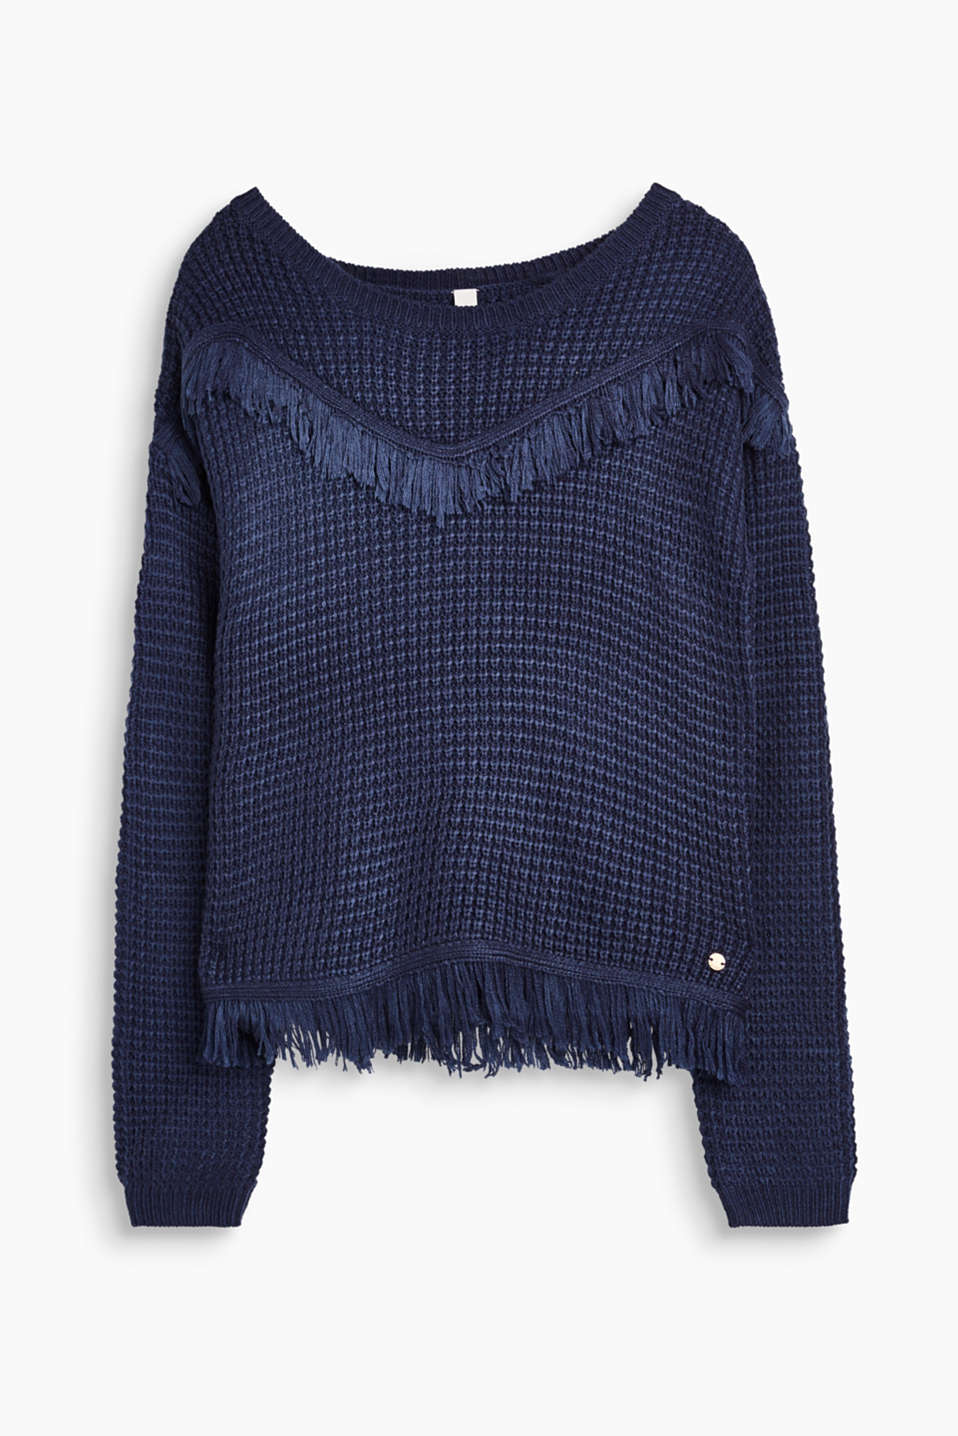 Jumper in a soft waffle knit with fringed borders to rule out cold weather and boring outfits!